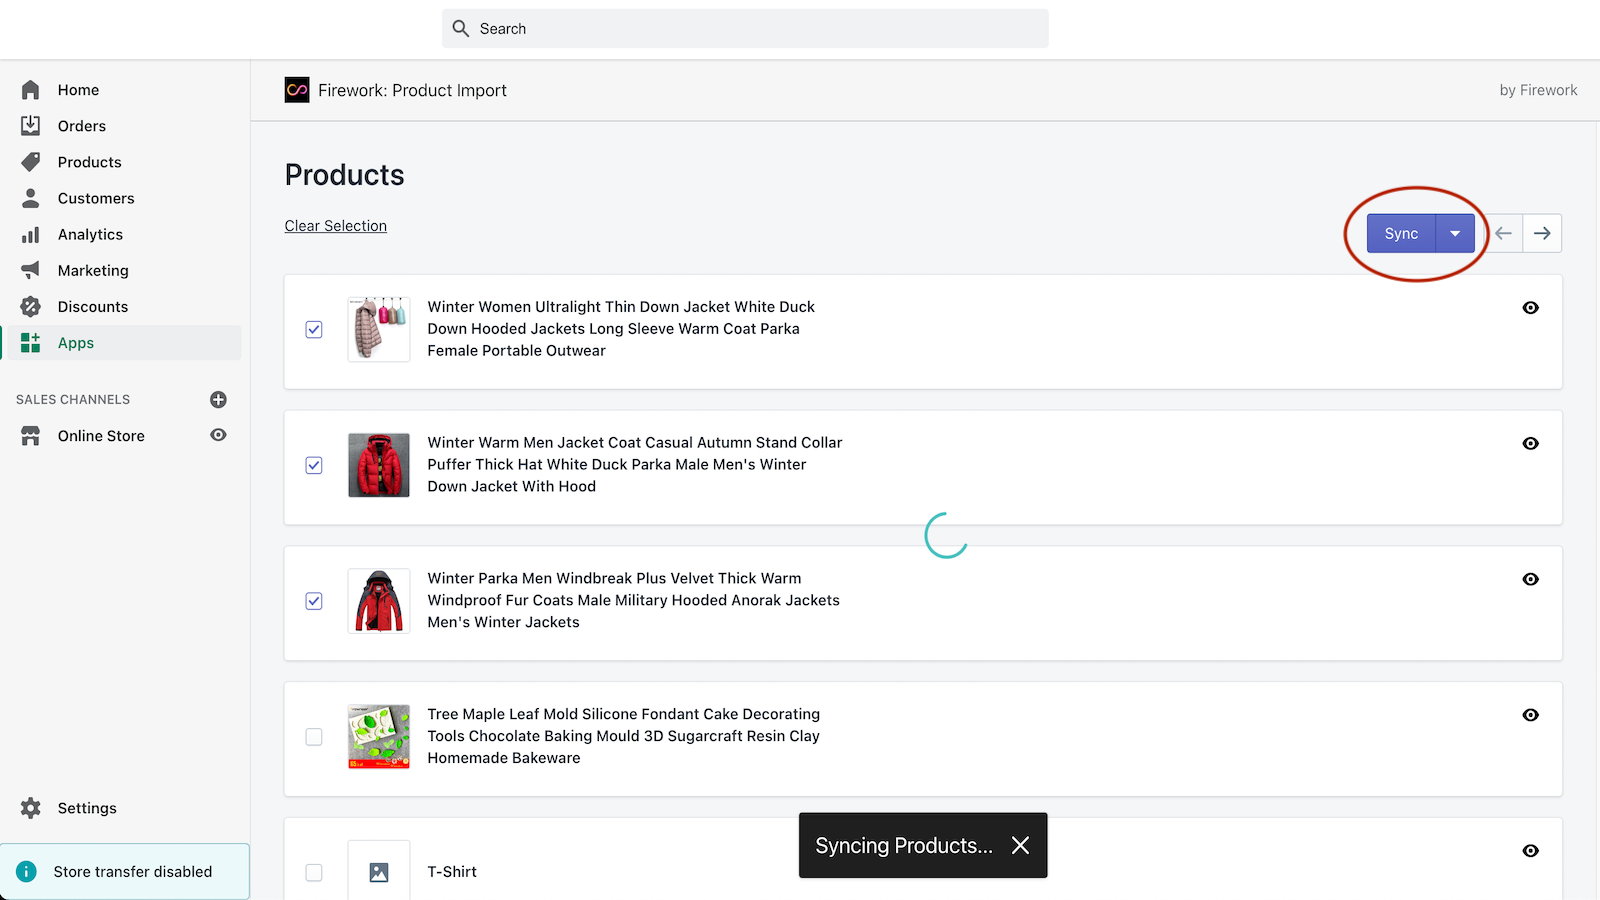 Click the Sync button to import selected products.